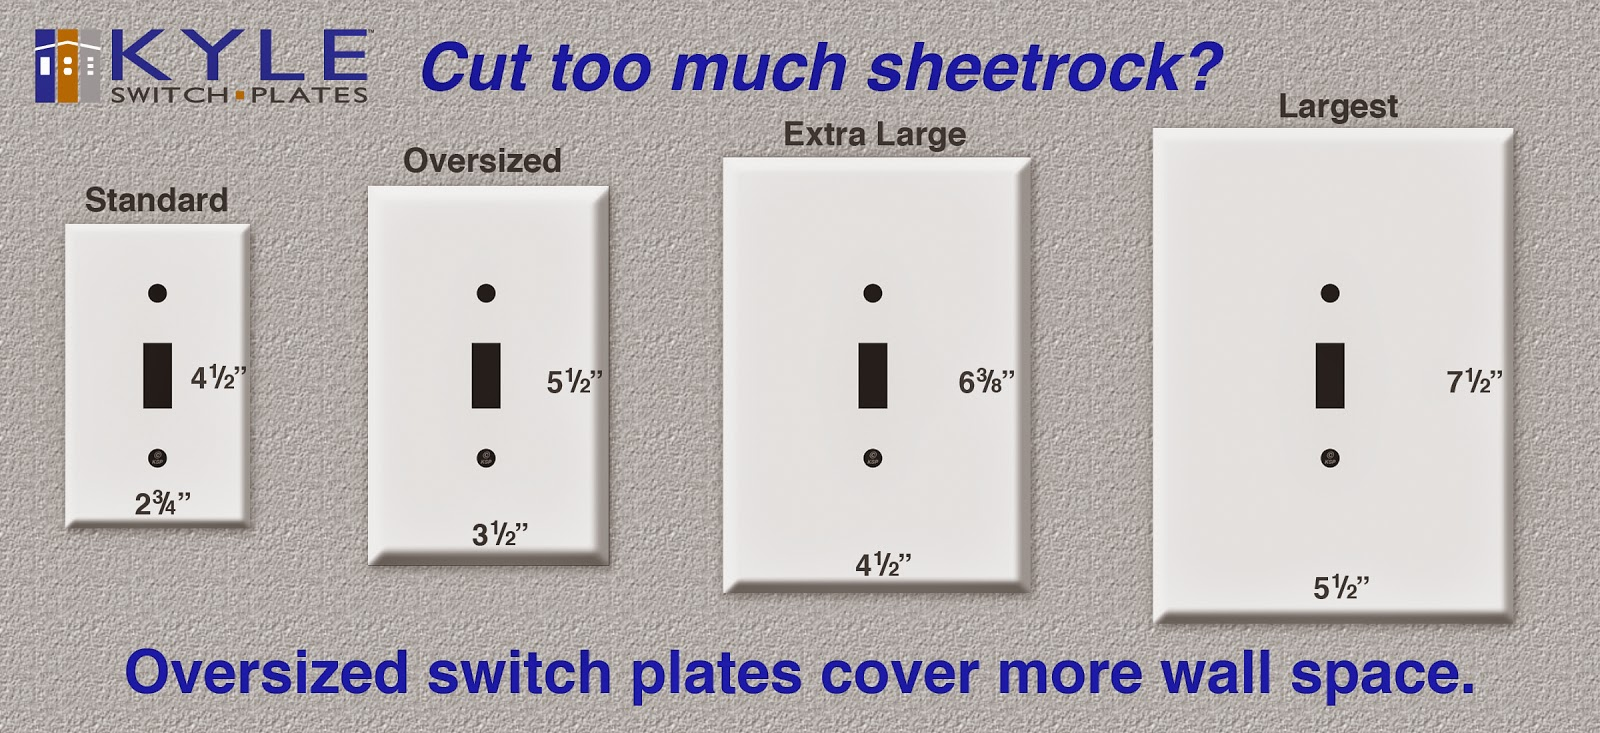 Oversized Switch Plate Covers Interesting Kyle Switch Plates May 2014 Review